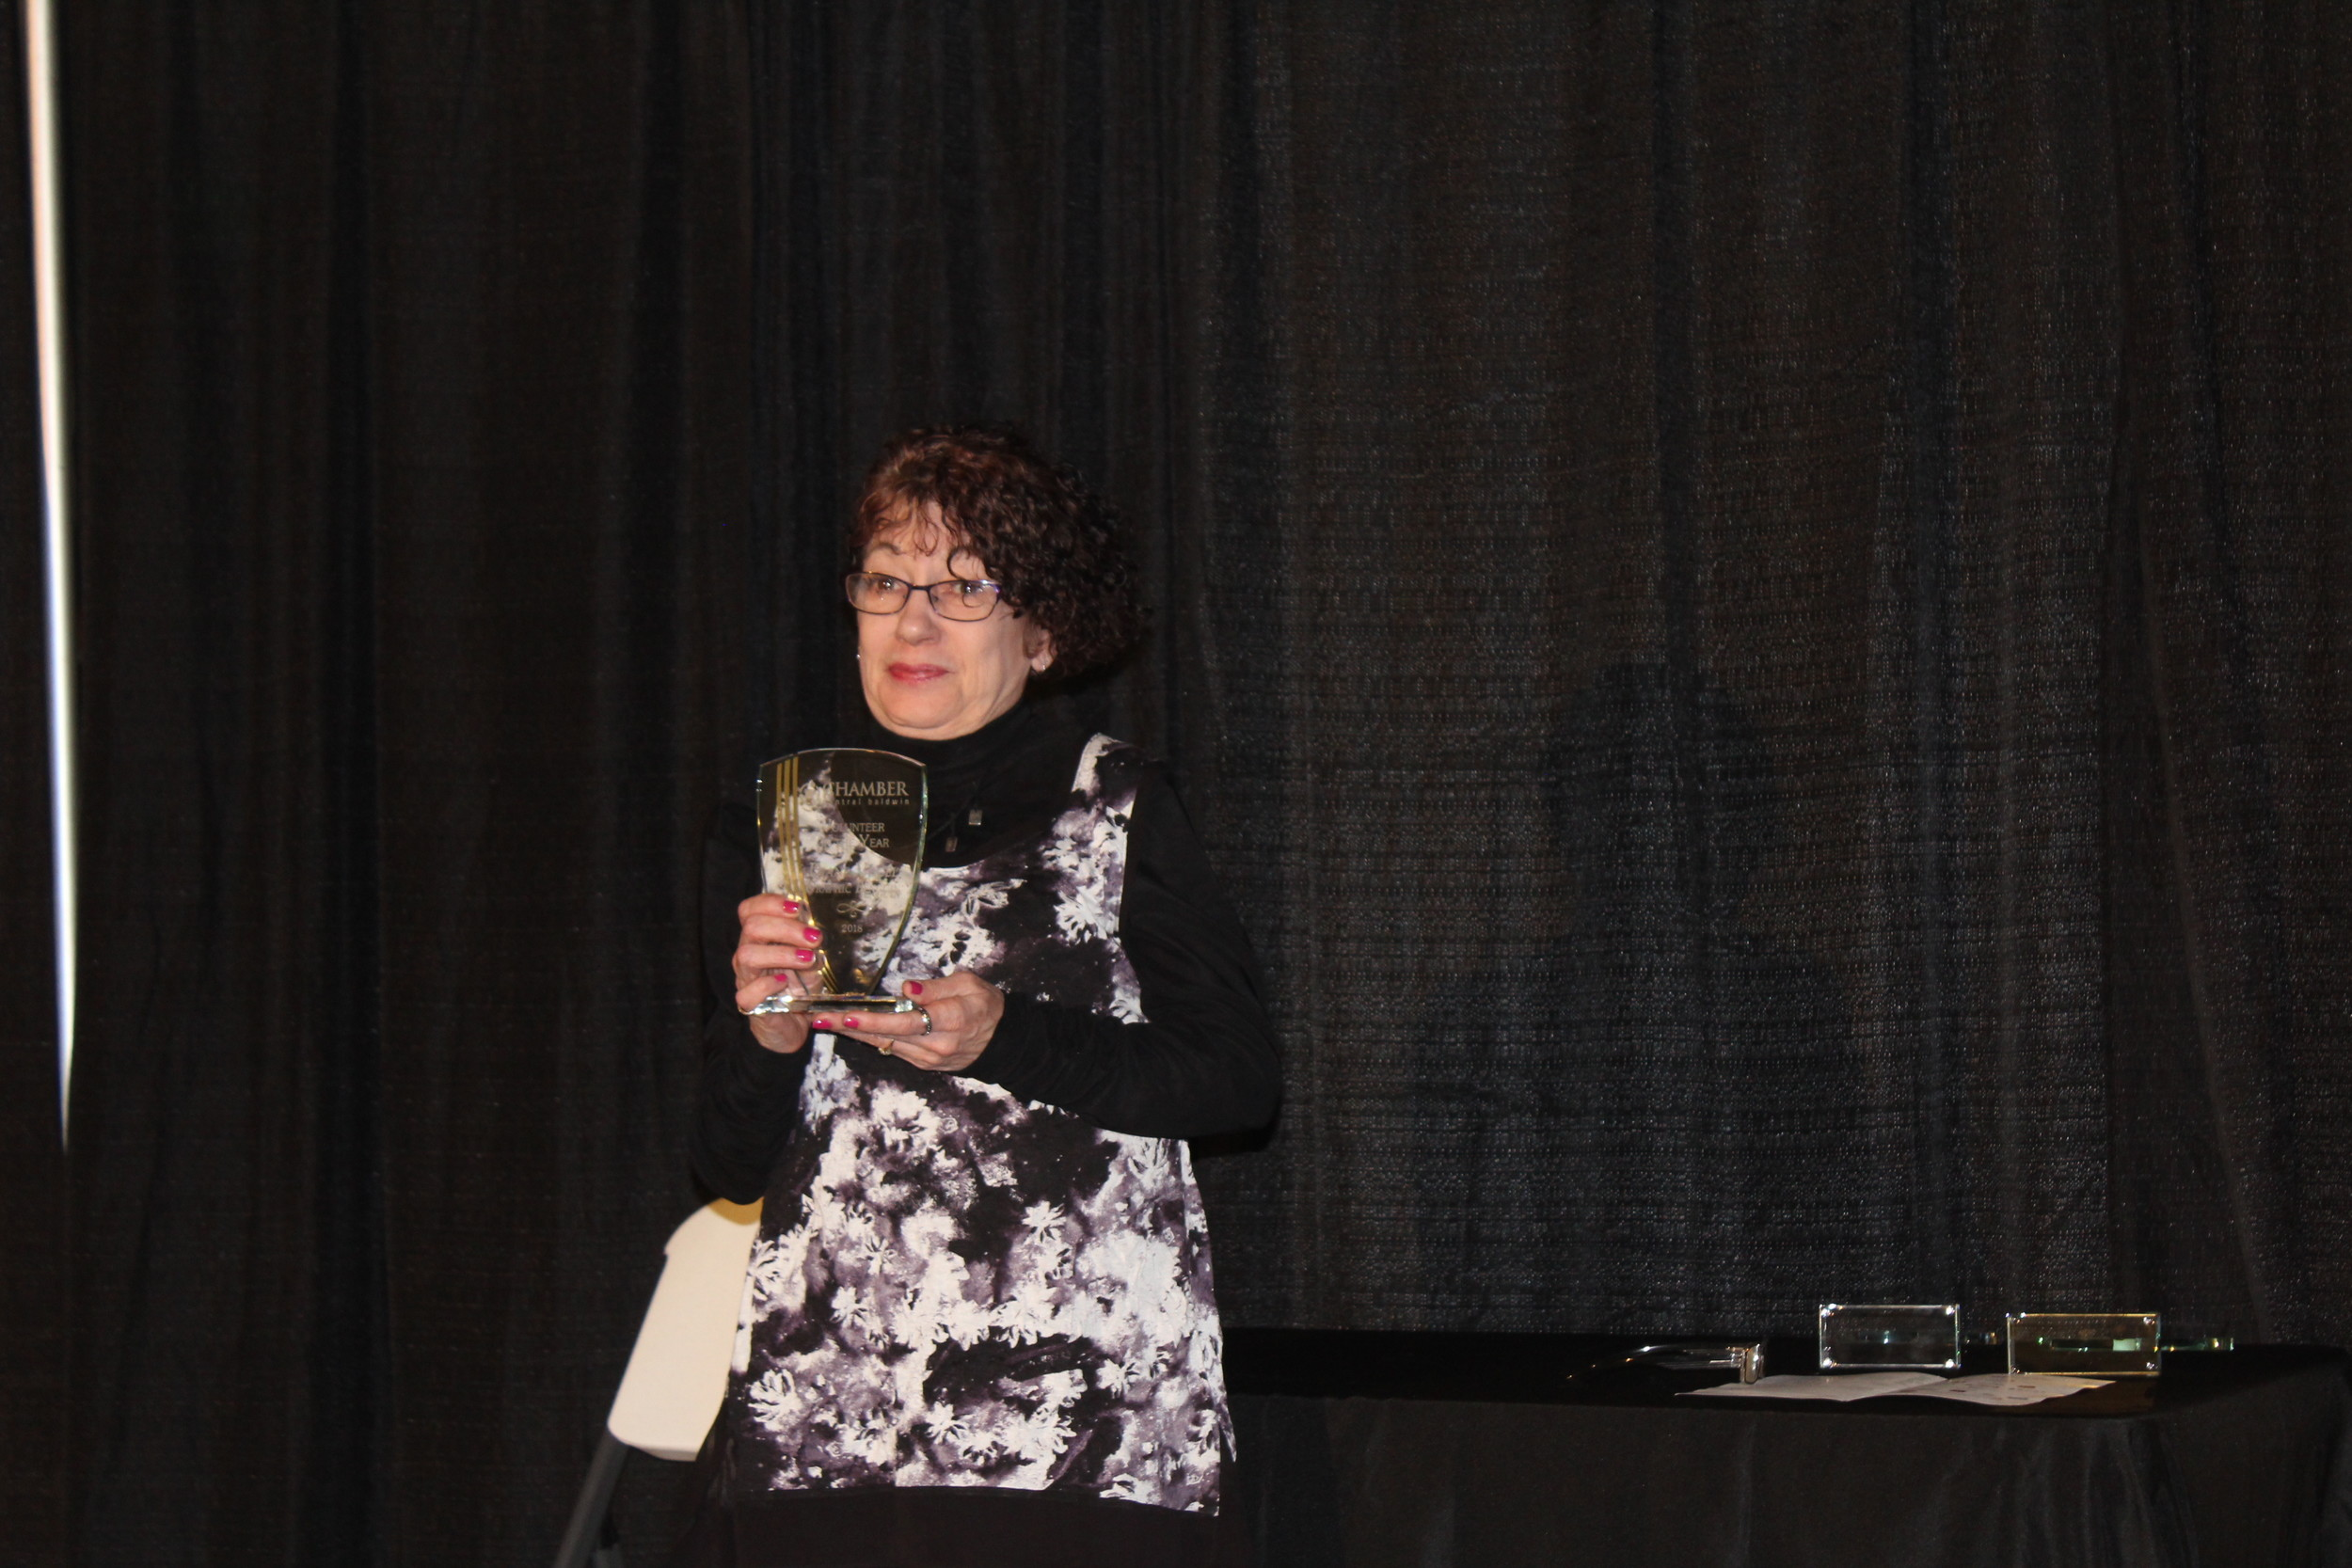 The Chamber Volunteer of the Year Award went to Diane Vogel, who has been a member of the Chamber for over ten years, served on the committee, heads the communications committee, and upkeeps the Chamber's website.